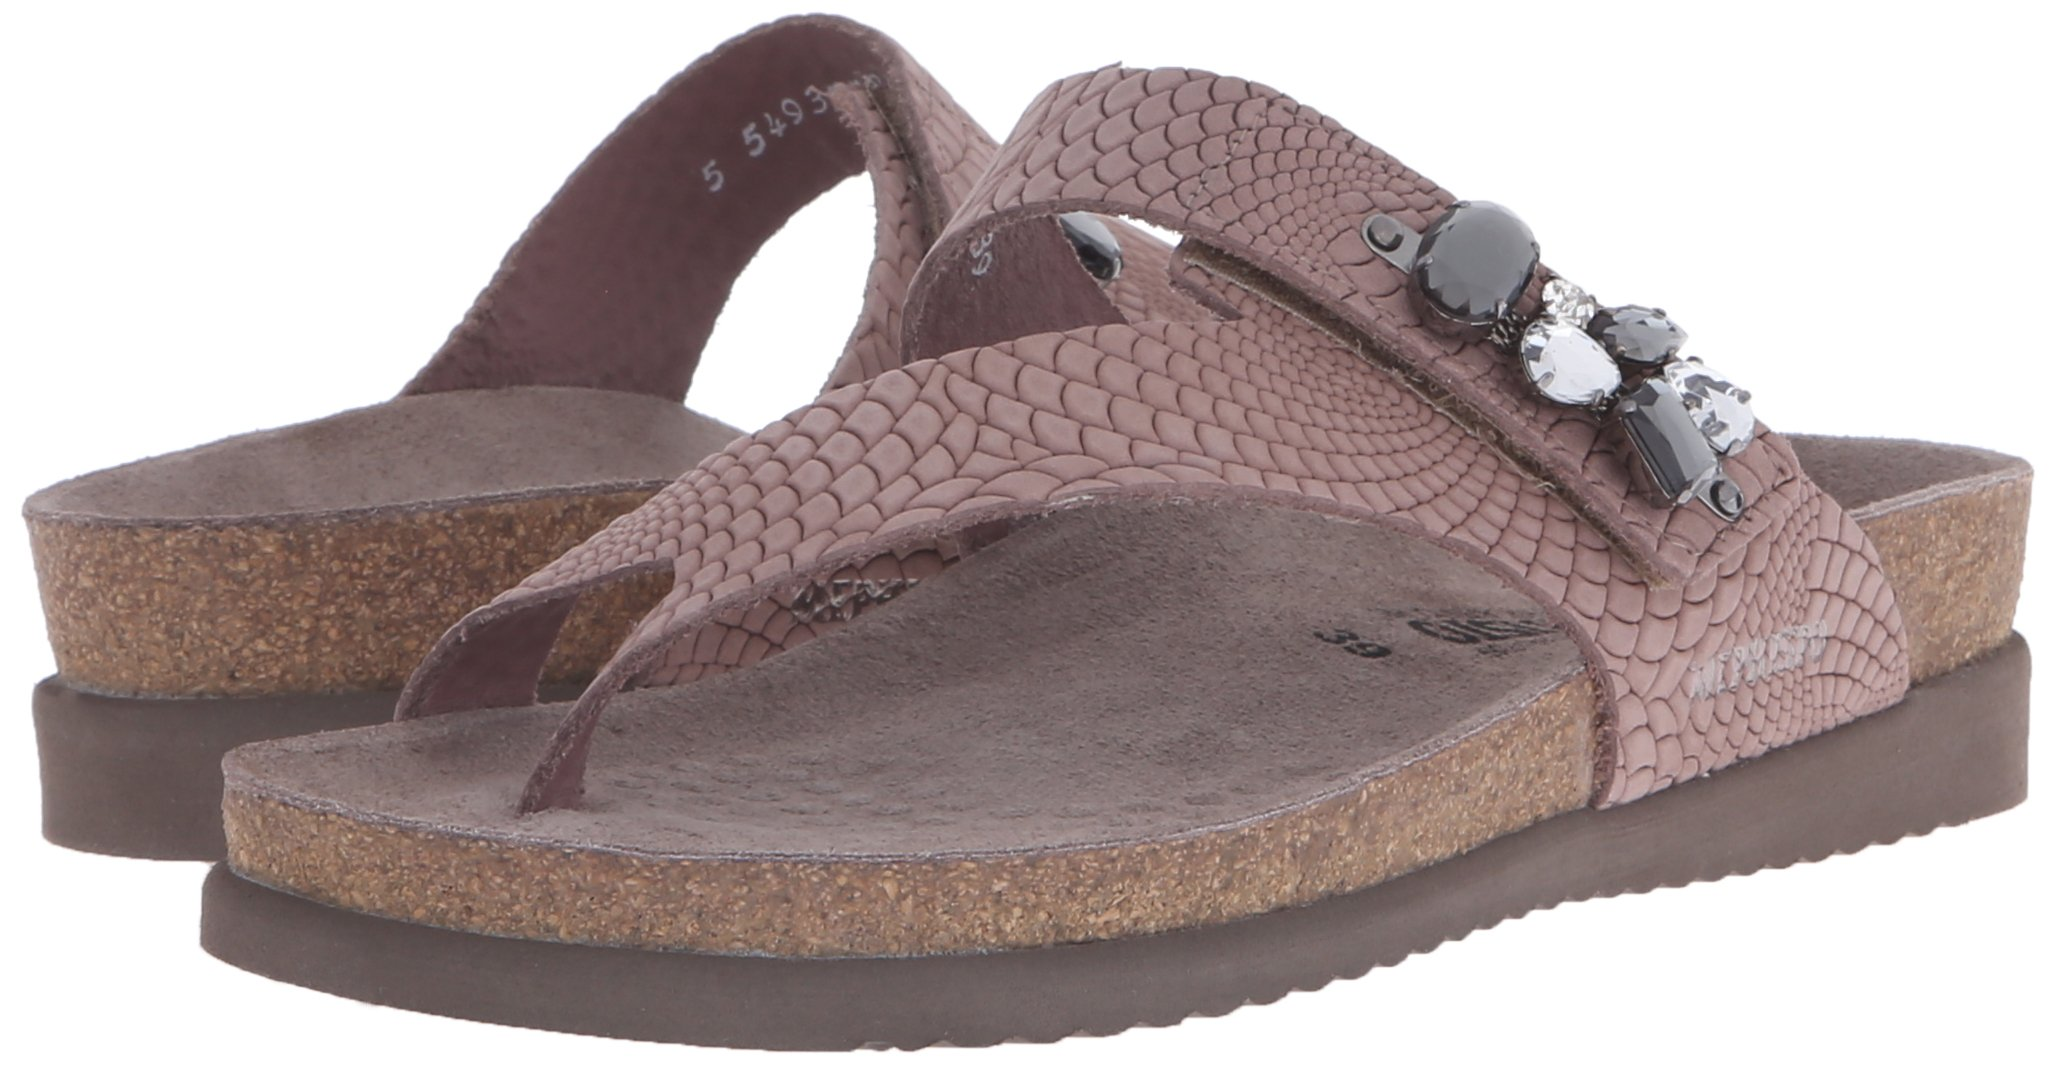 Mephisto Women's Halice Flip Flop, Old Pink Rio, 9 M US by Mephisto (Image #6)